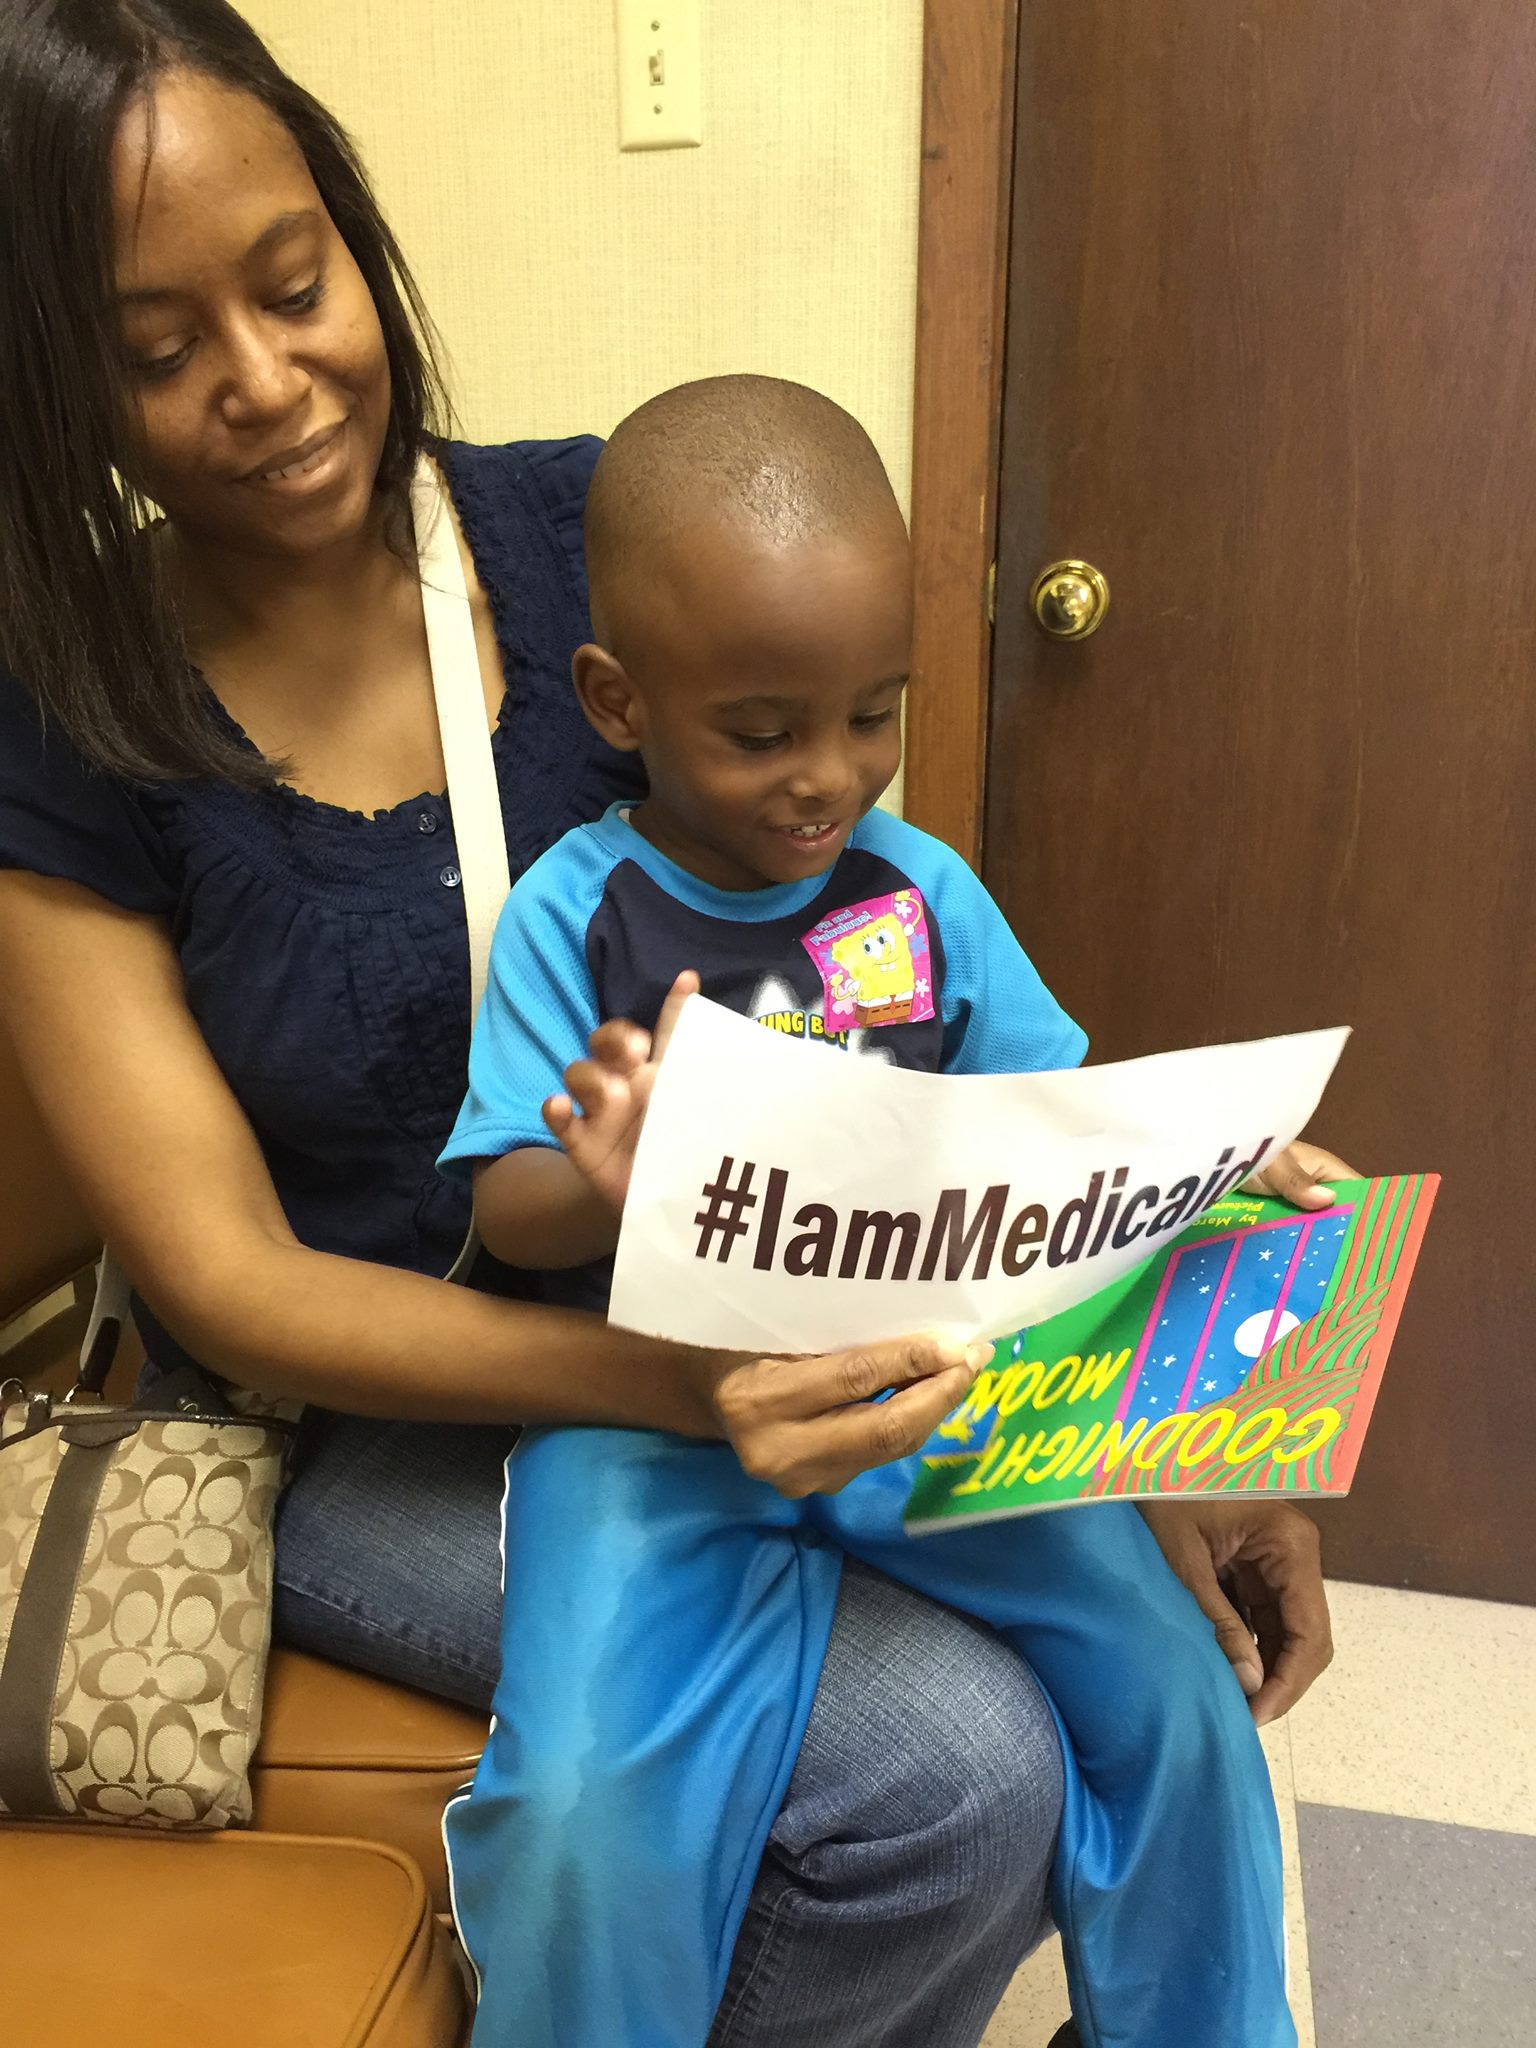 ‪ I was 2lbs at birth. My insurance was Medicaid. My mom gets her Master's Degree this month and I now have private insurance. Thanks Medicaid! #‎IamMedicaid